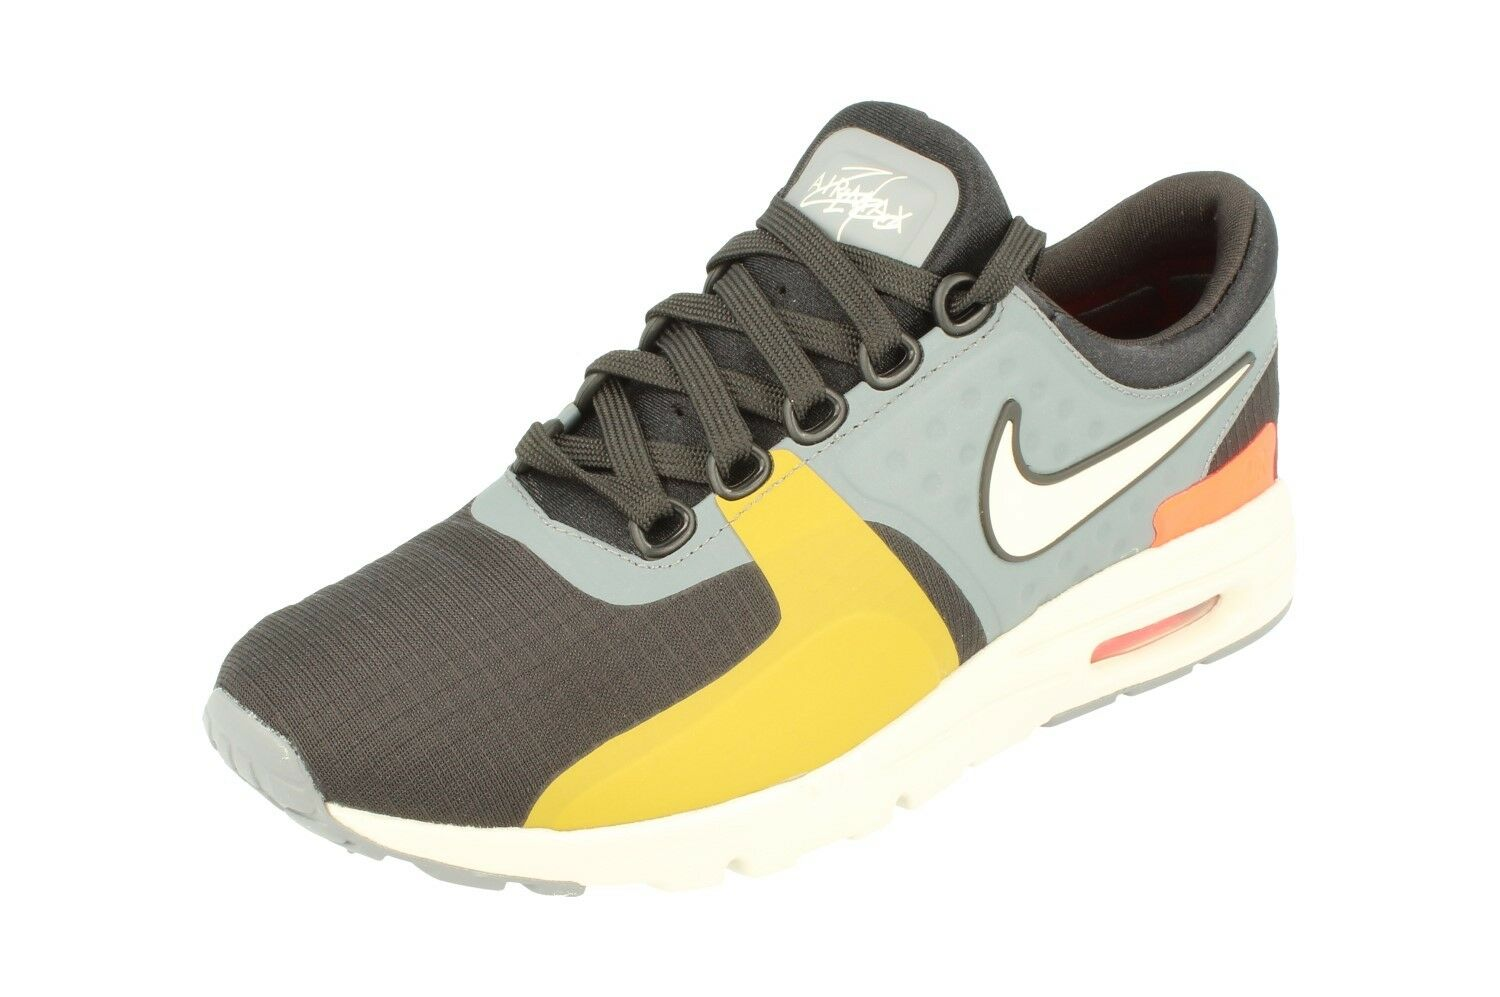 Nike Air Max Zero Si Womens Running Trainers 881173 001 Sneakers Shoes